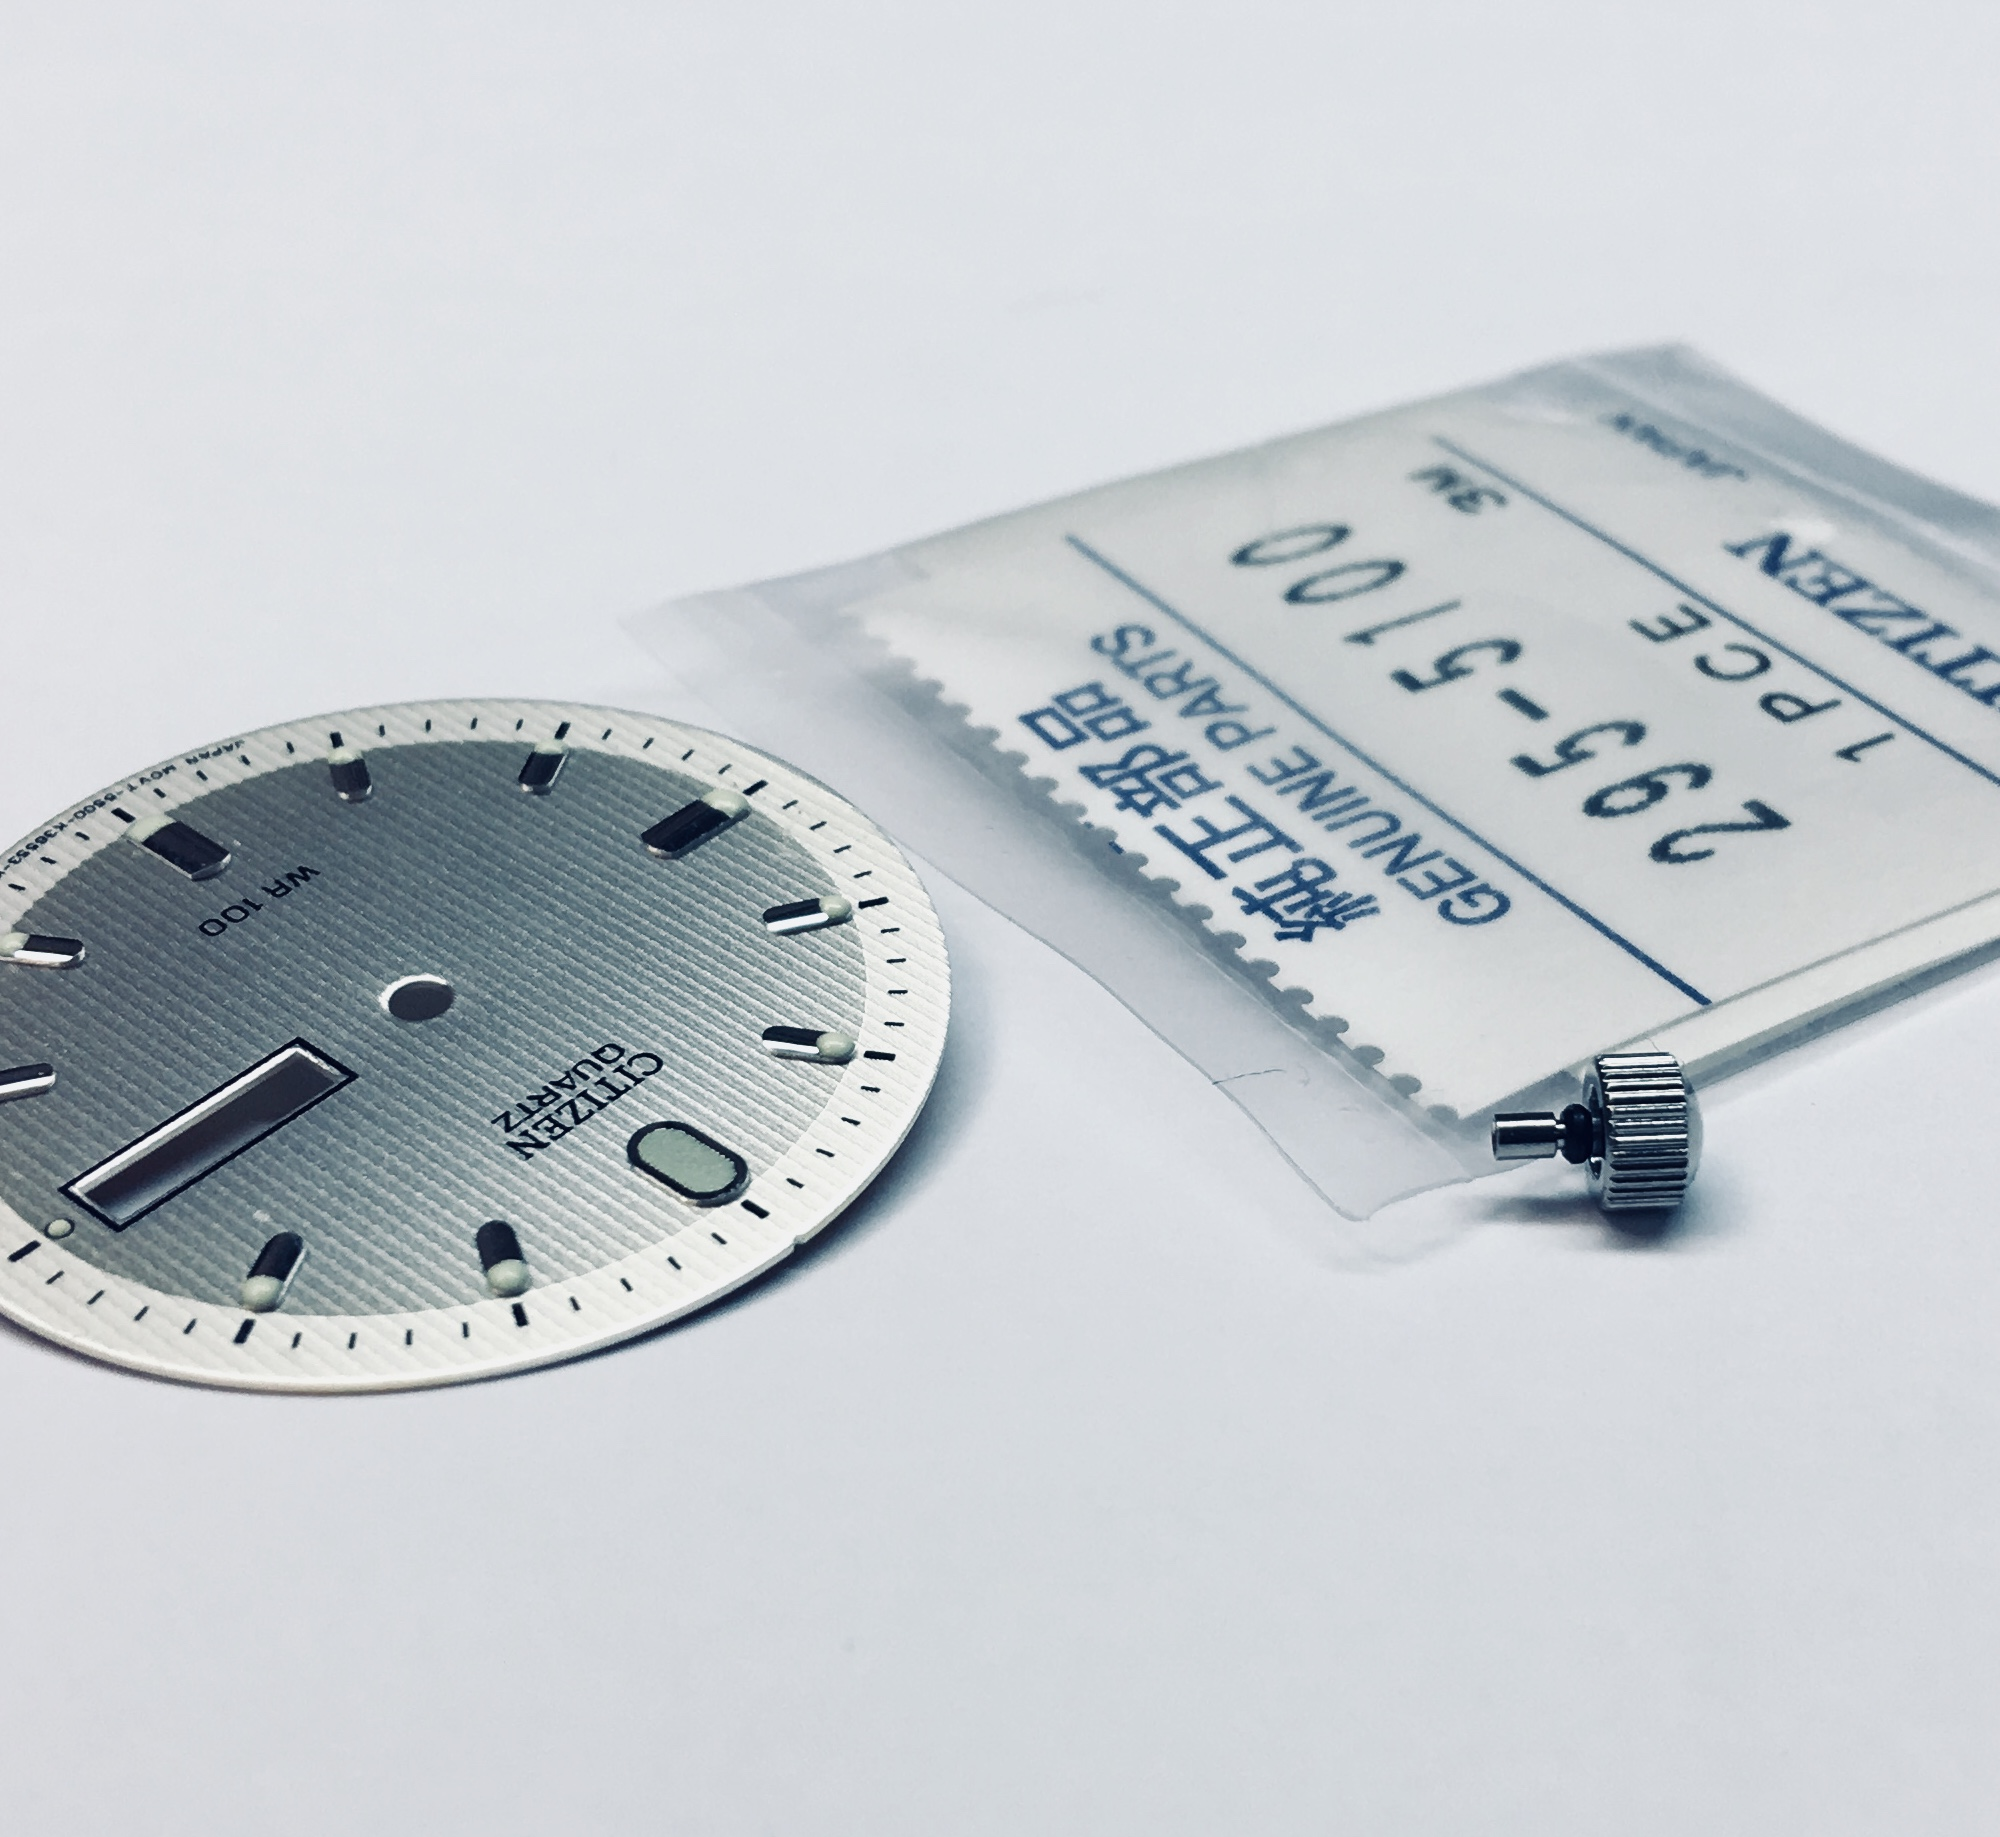 SEIKO WATCH SERVICE AND REPAIR